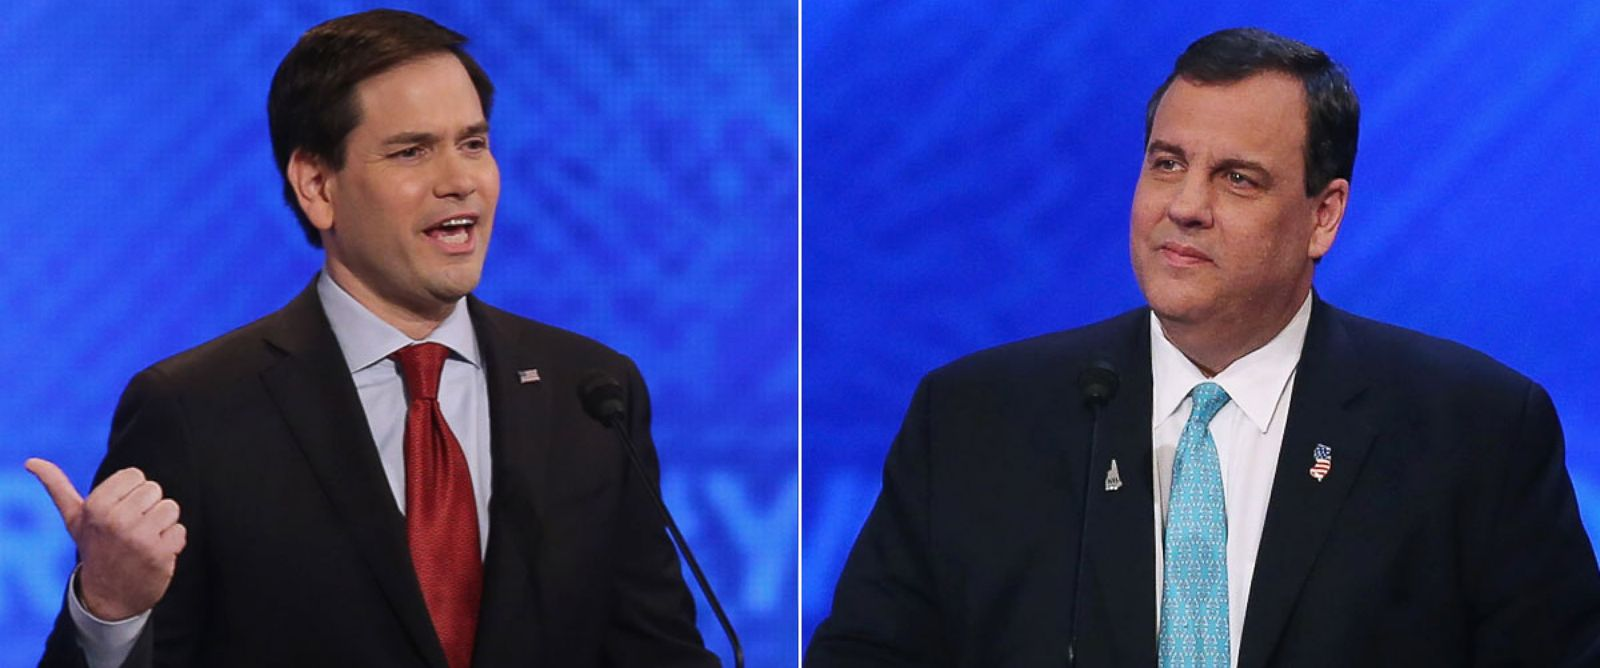 http://a.abcnews.go.com/images/Politics/gty_rubio_christie_split_mt_160206_12x5_1600.jpg